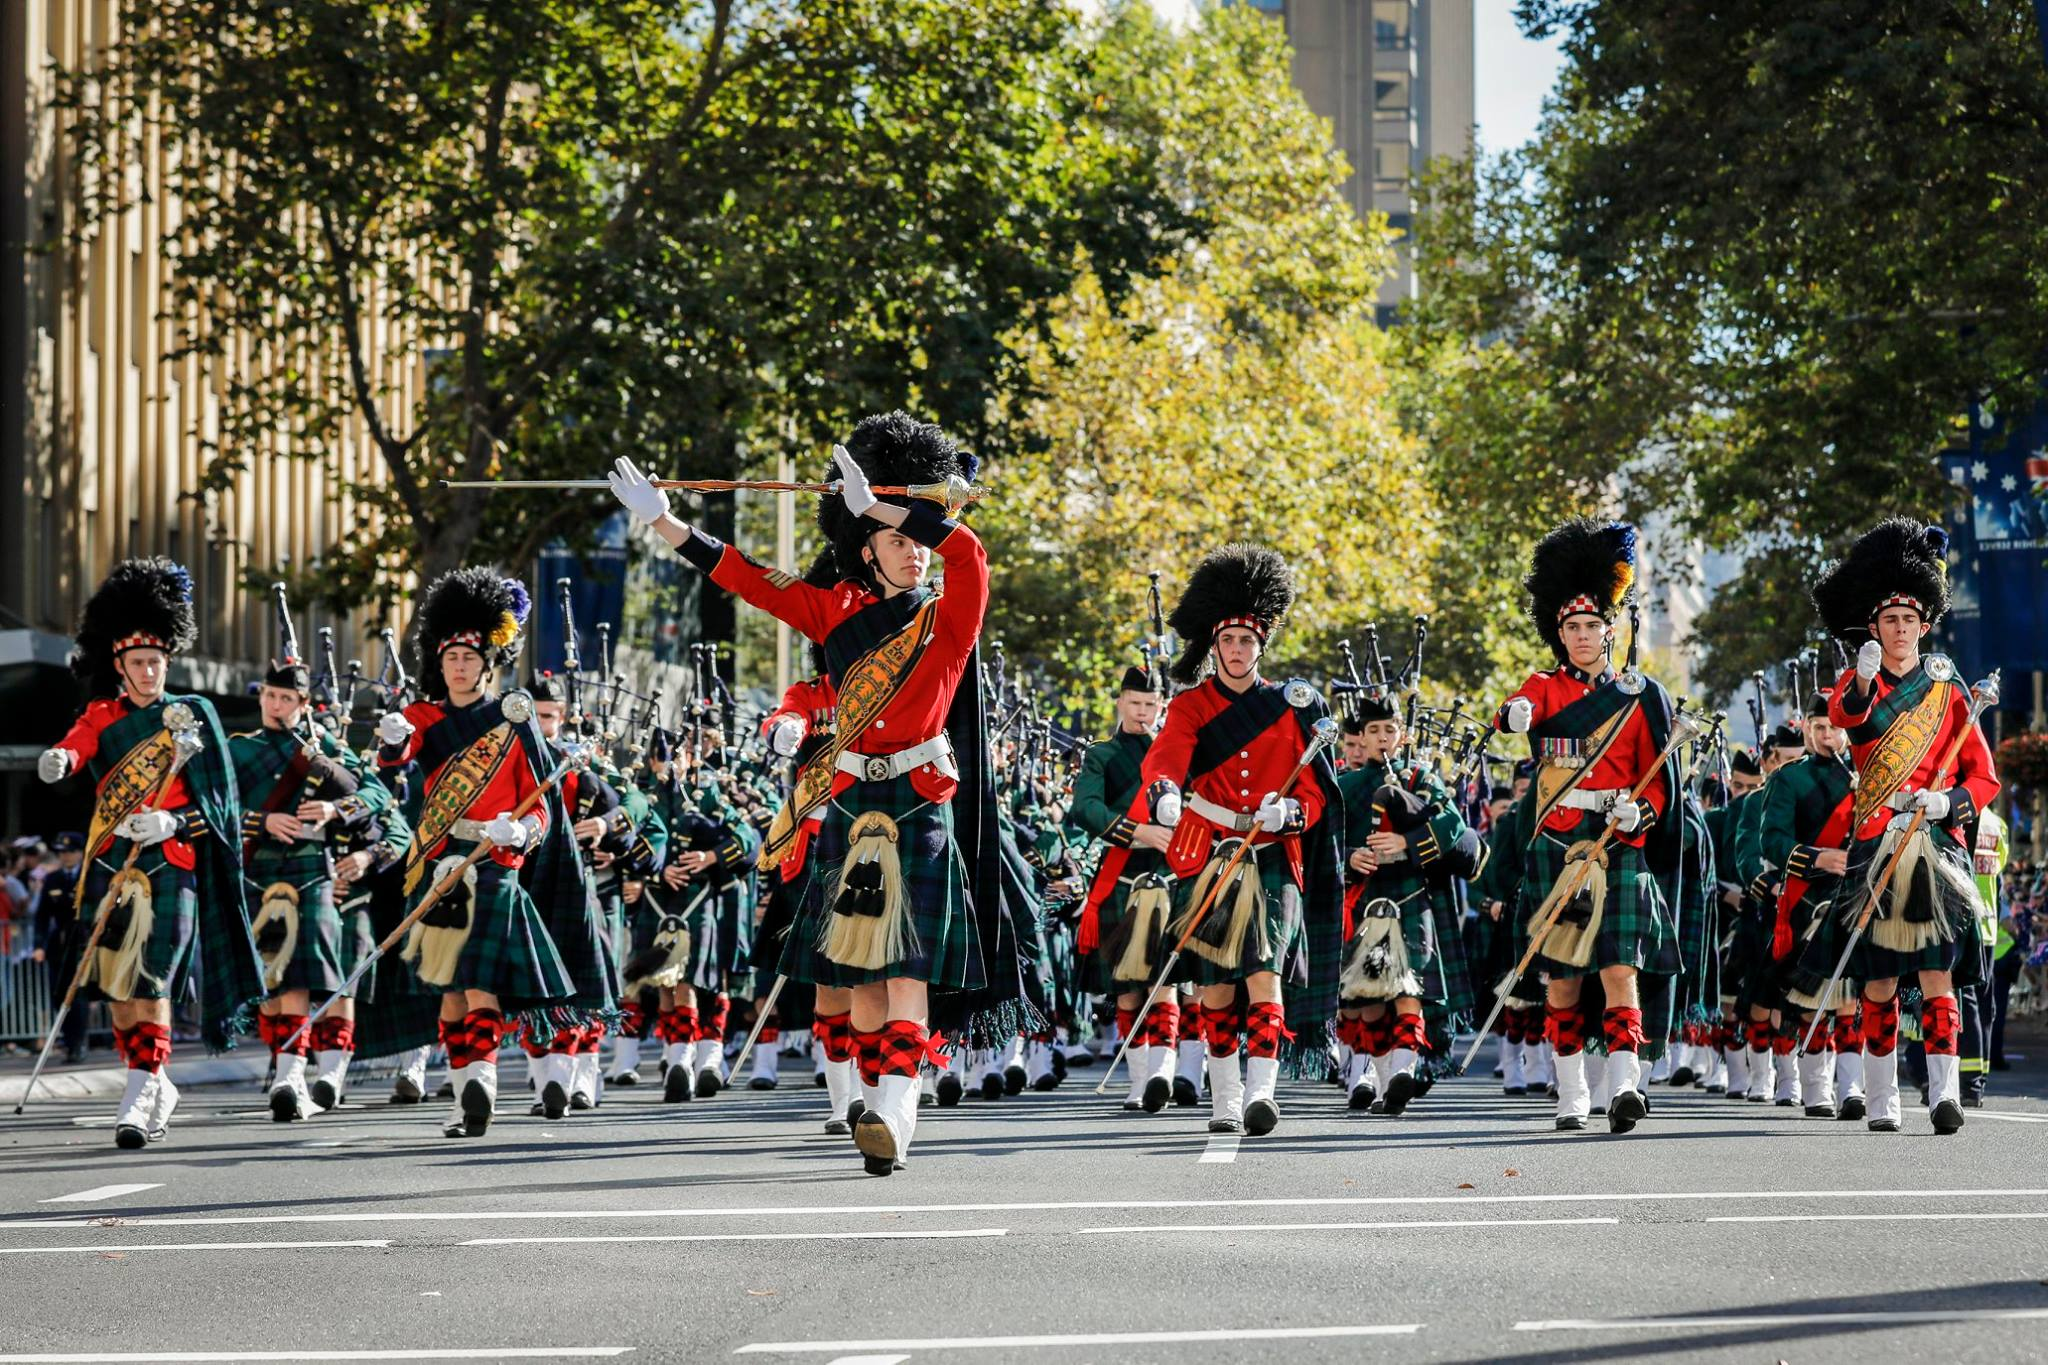 Pipes and Drums Parade